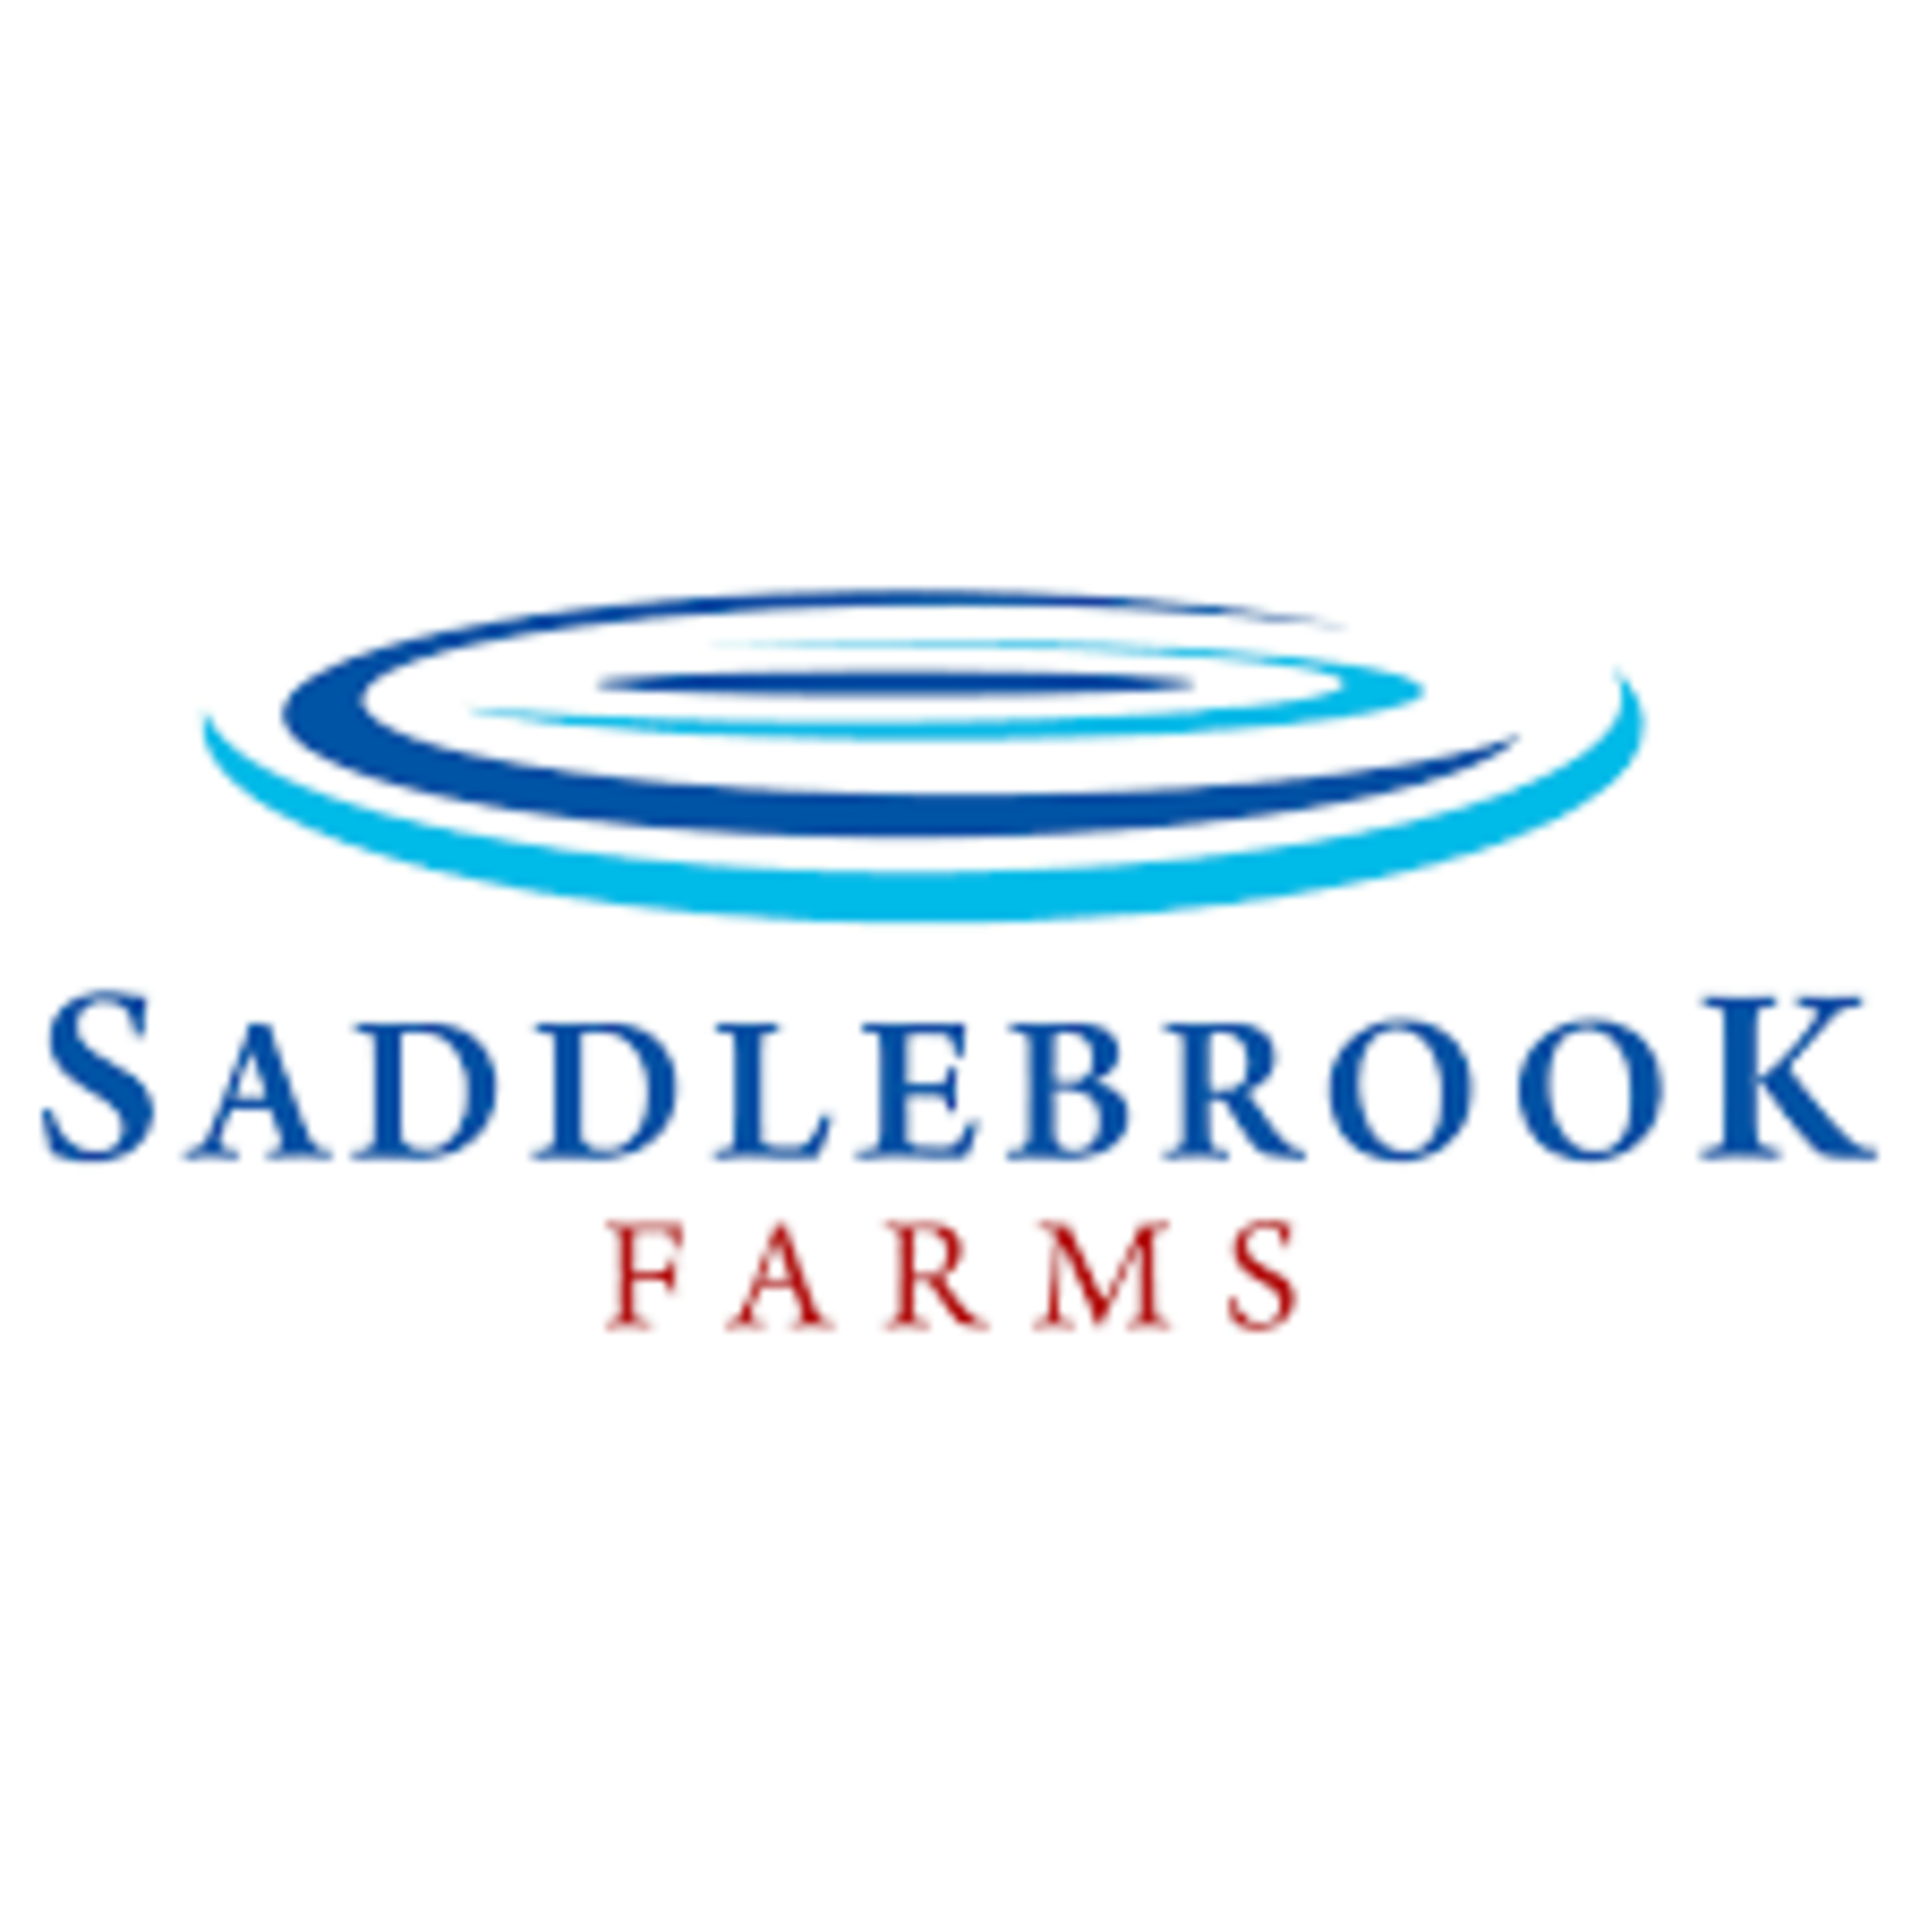 SADDLEBROOK FARMS REAL ESTATE MARKET UPDATE FOR March 2017